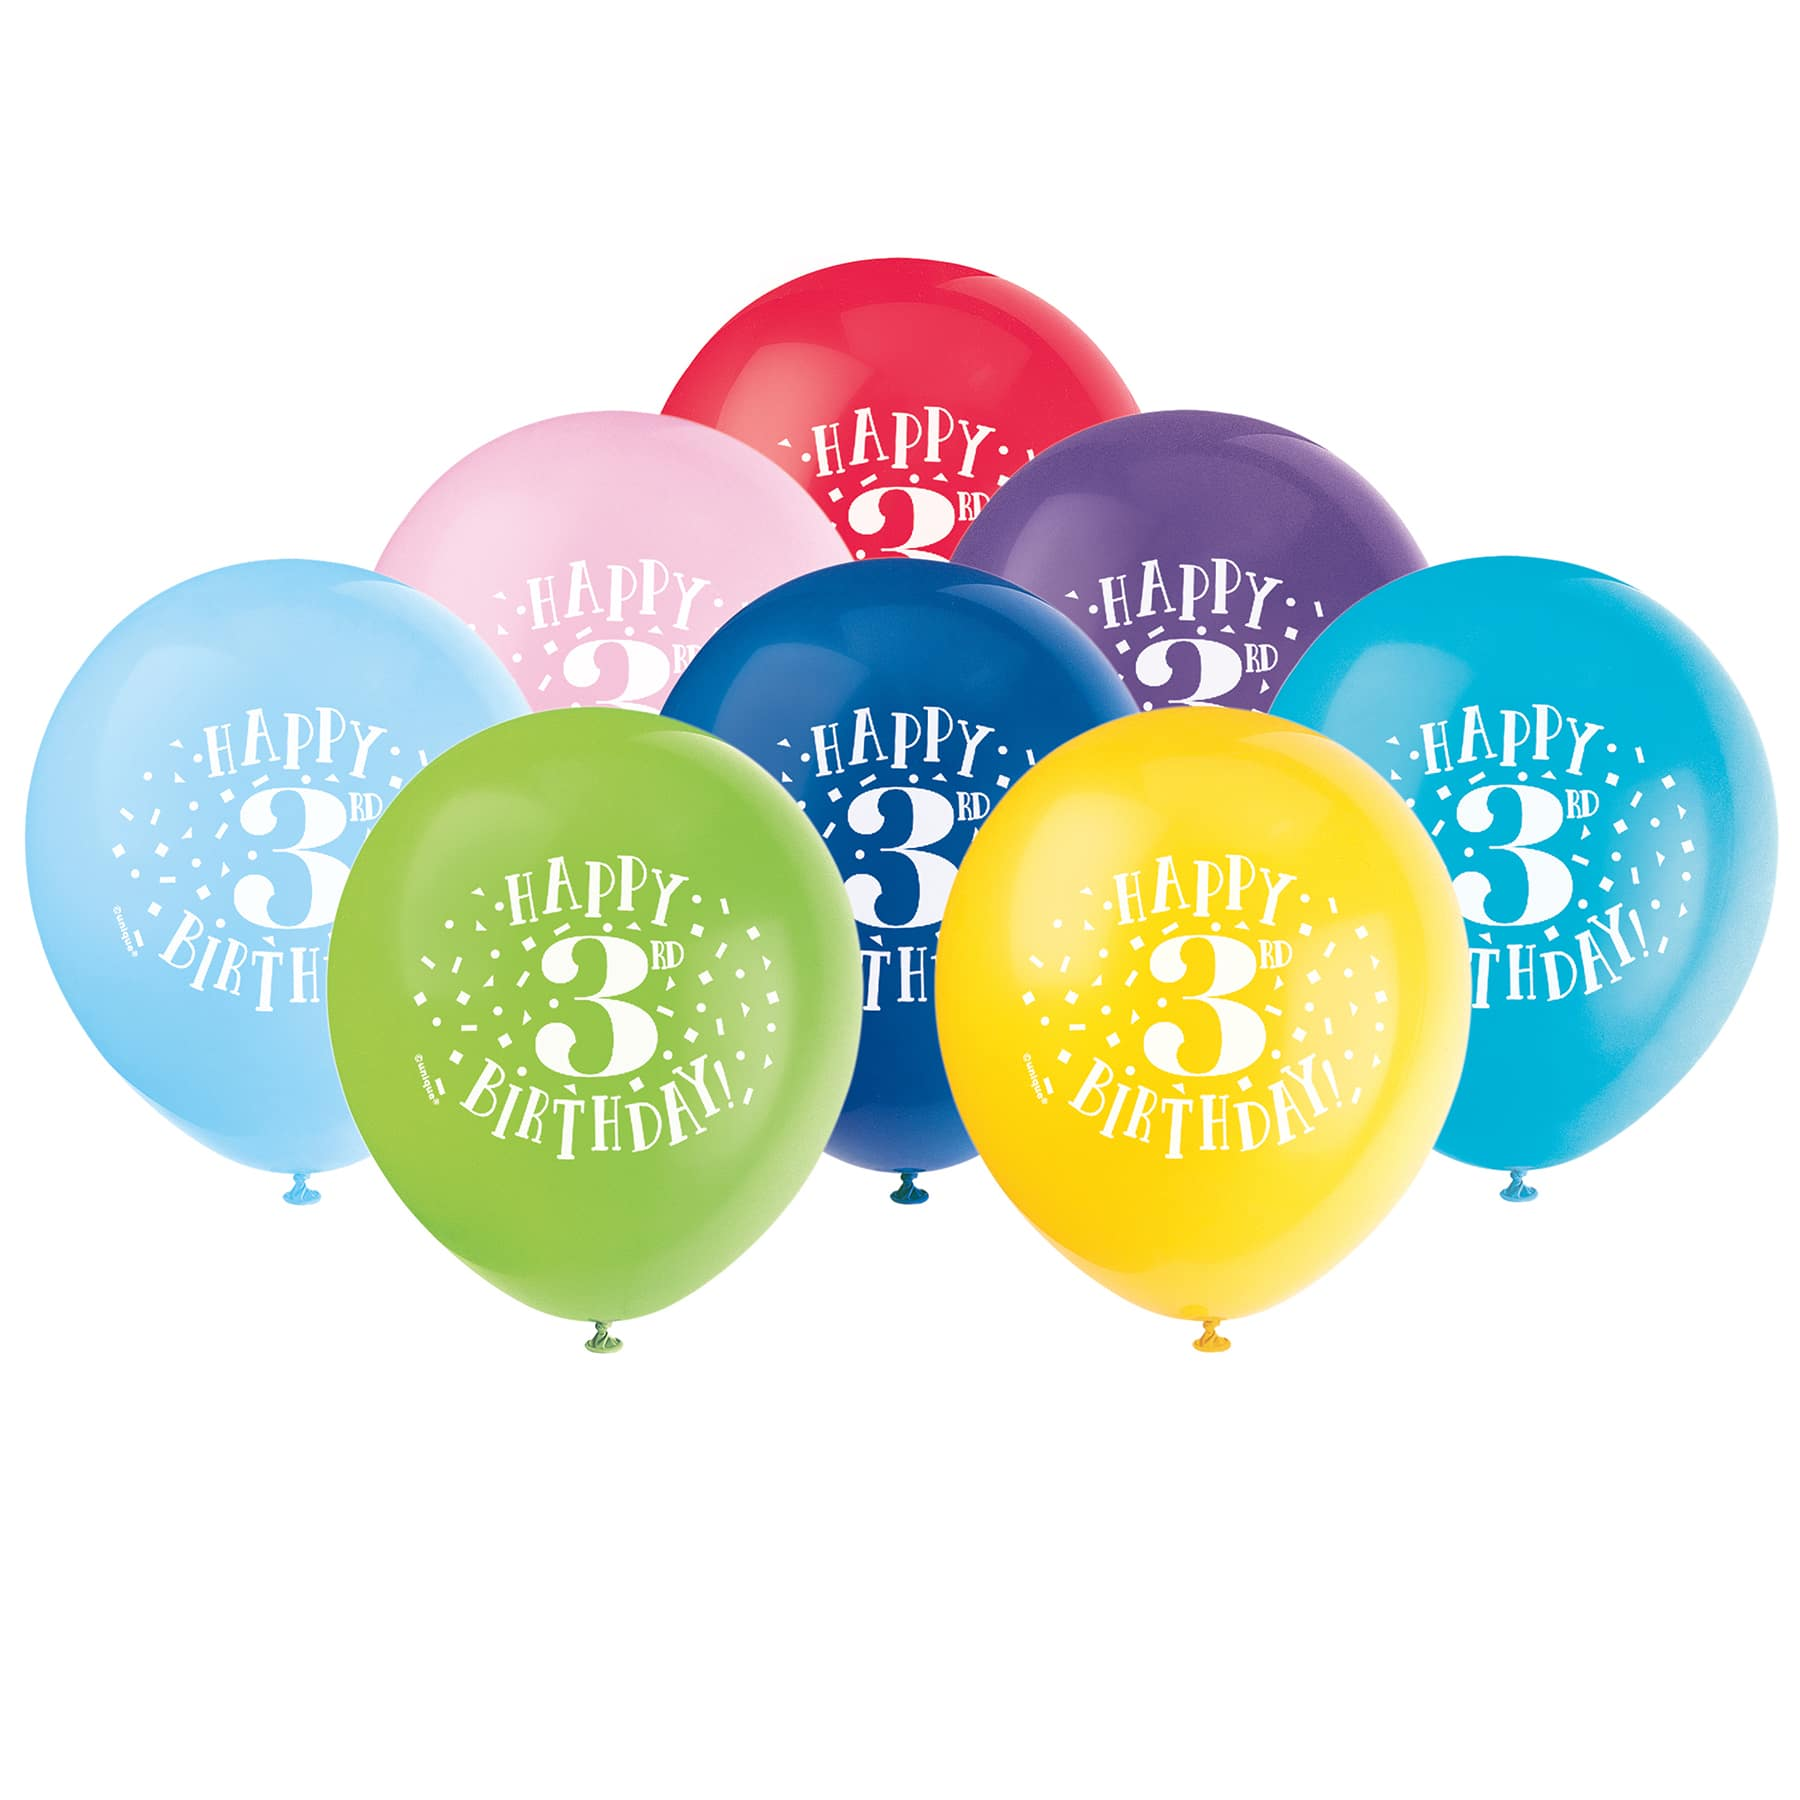 Happy 3rd Birthday Balloons 3rd Birthday Party Decorations